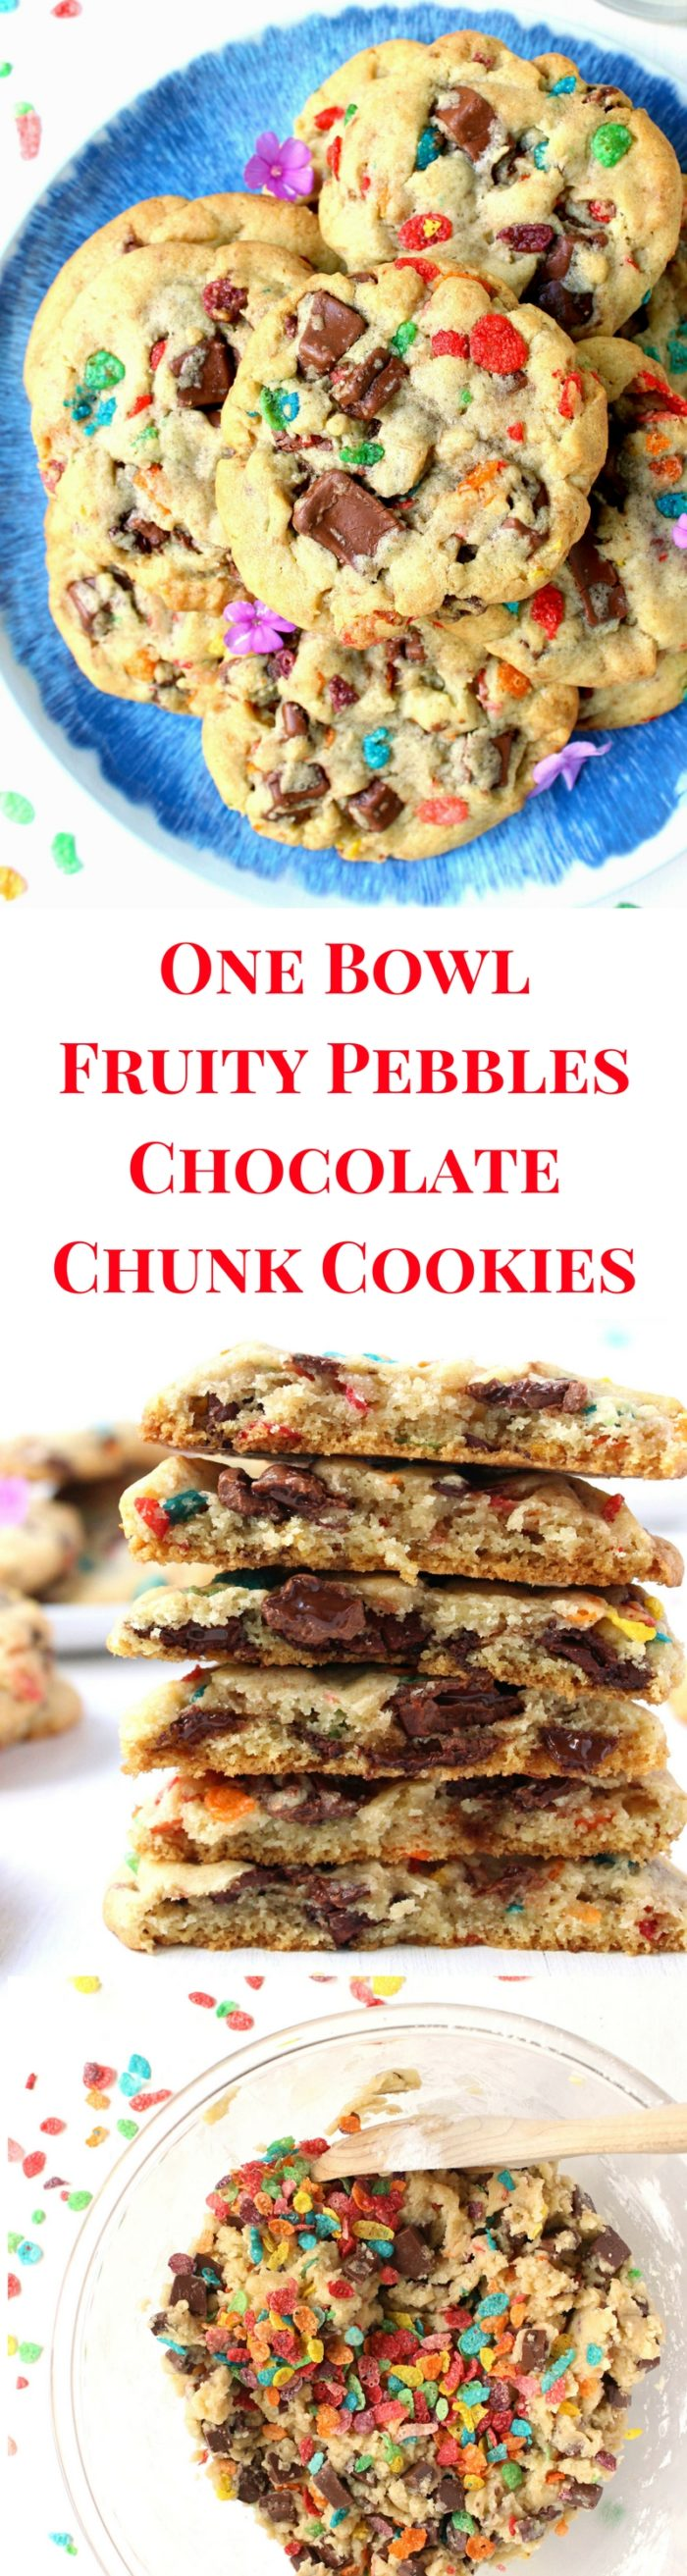 One Bowl Fruity Pebbles Chocolate Chunk Cookies - Wry Toast